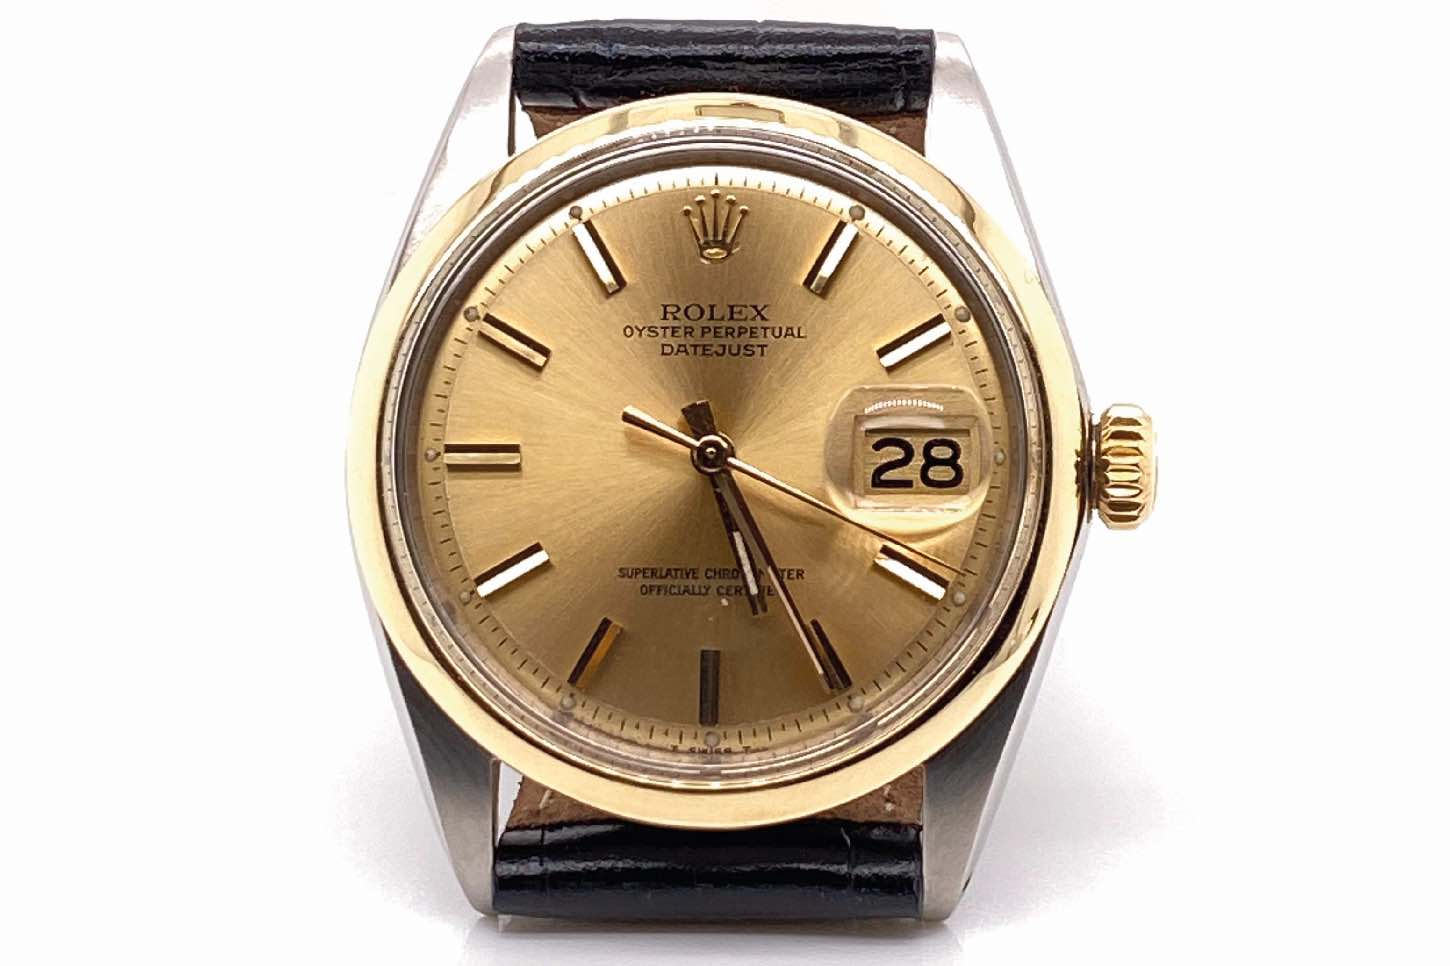 Montre Rolex Oyster - 22025